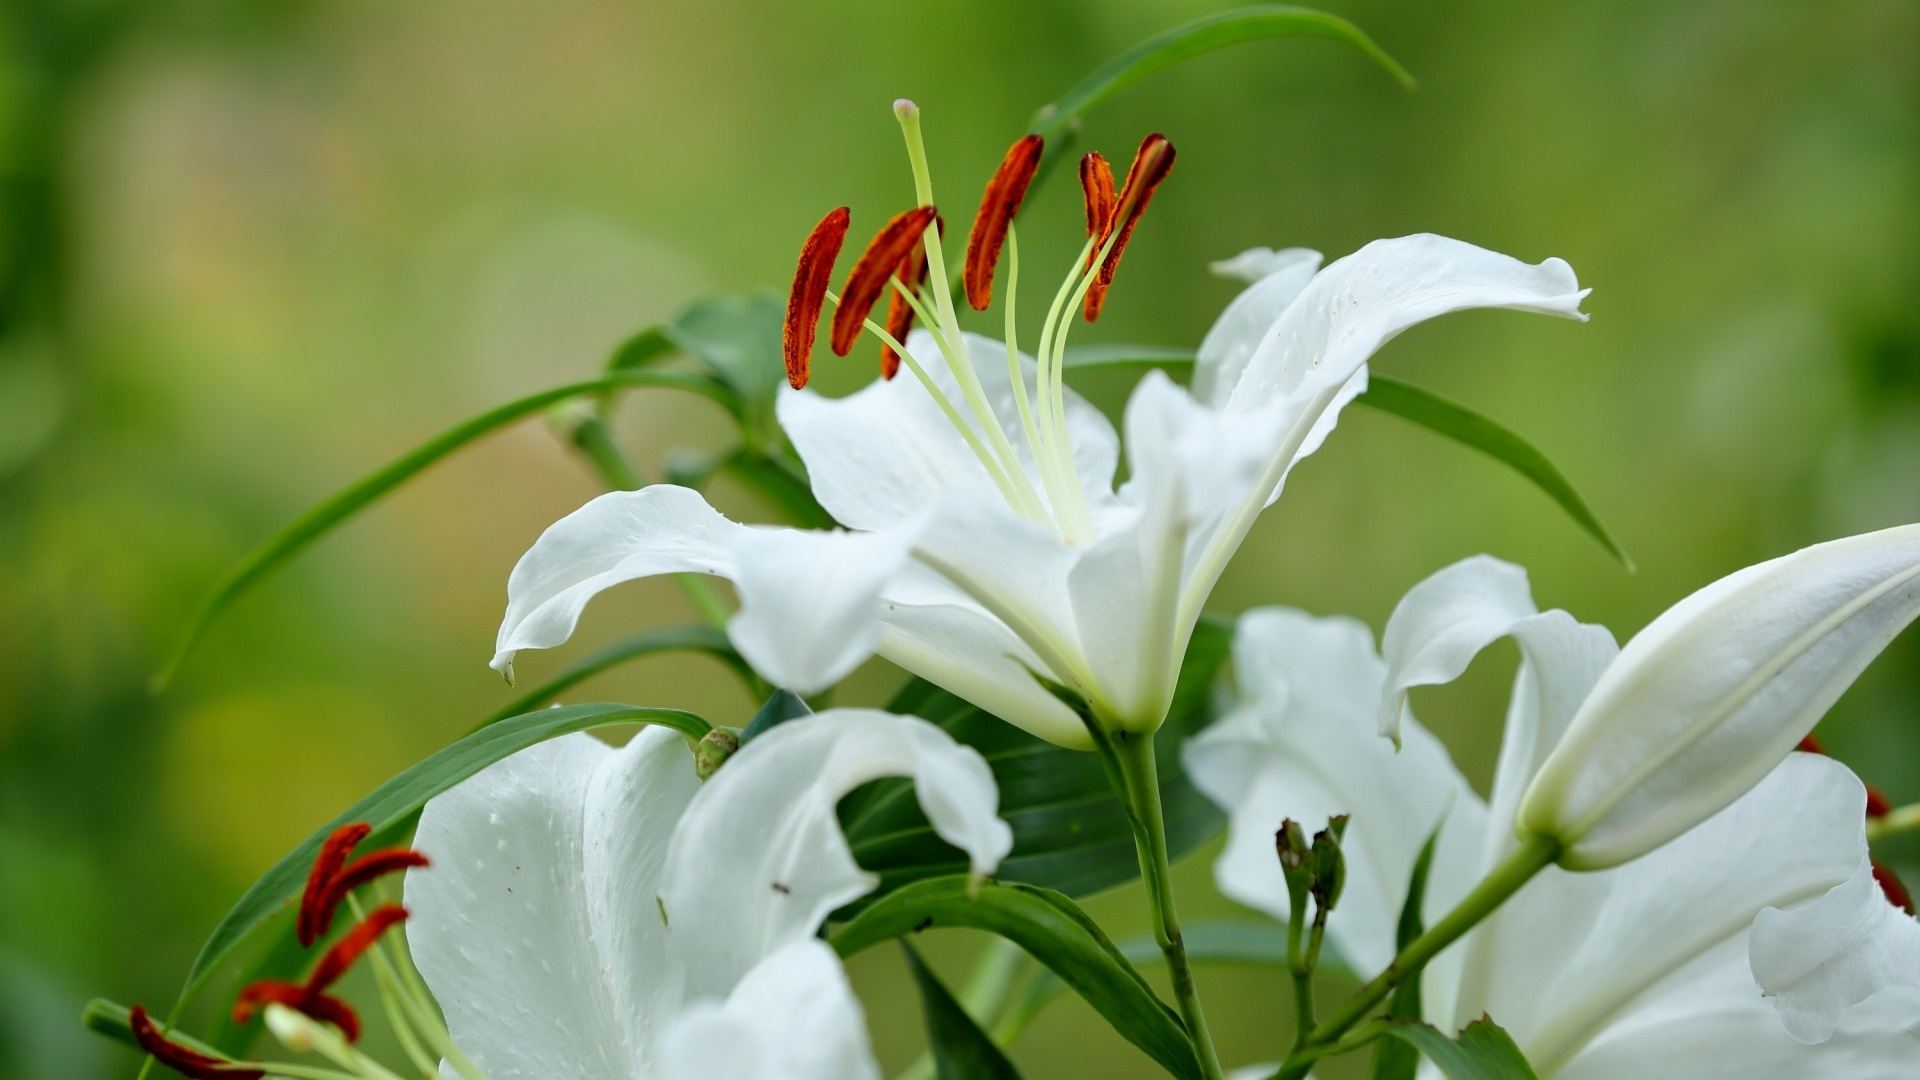 Lily Flower wallpaper for pc